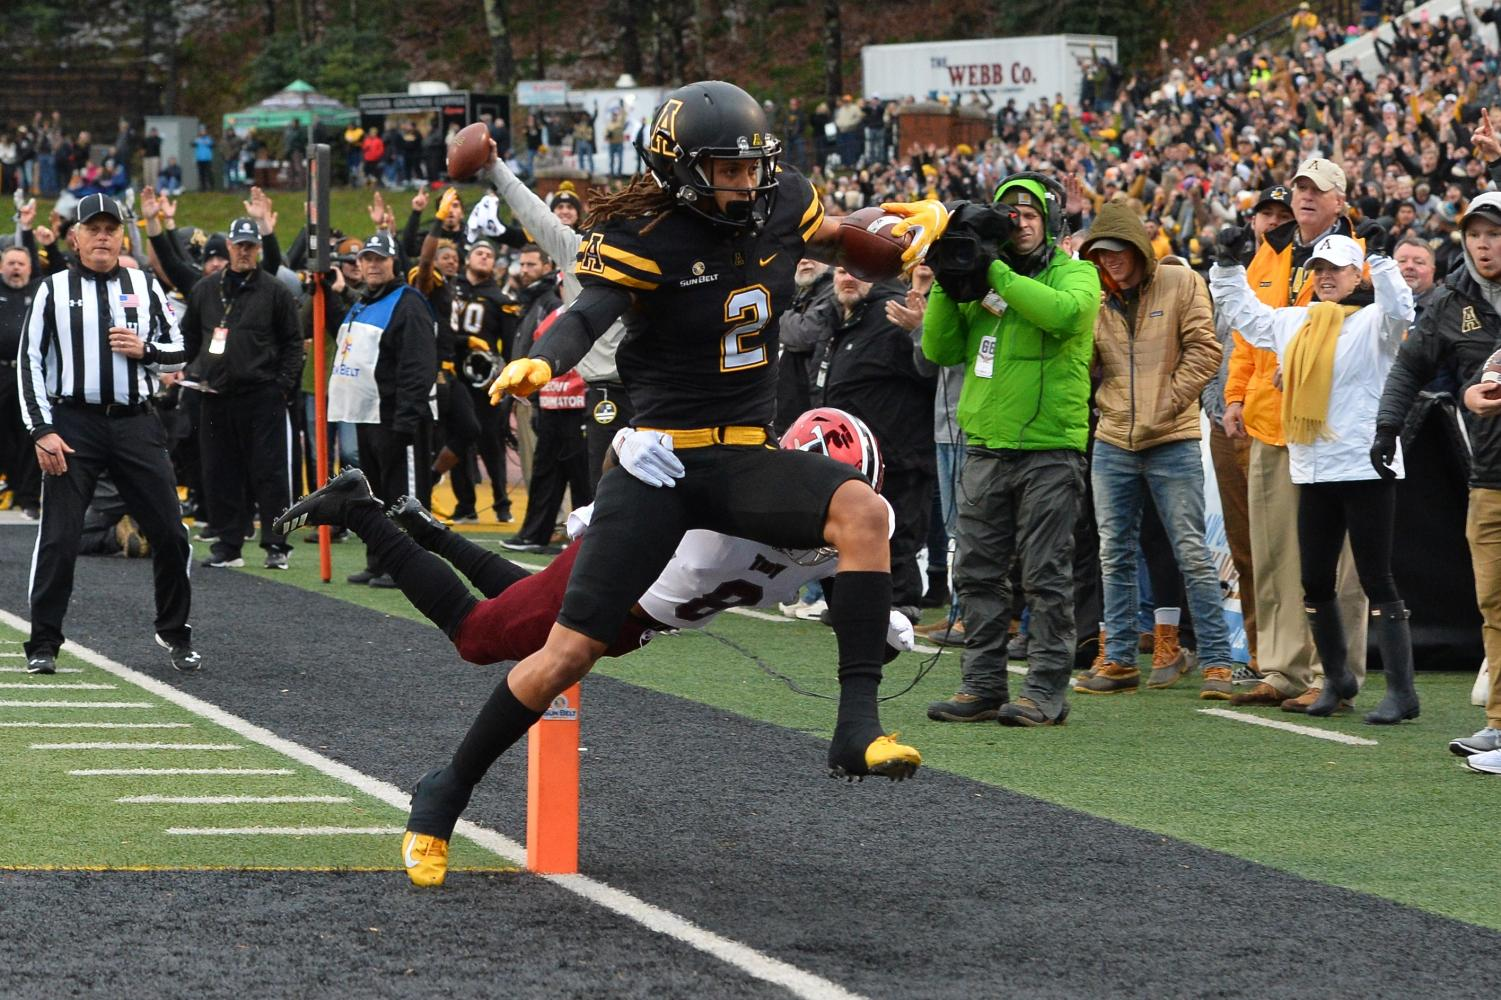 Junior wide receiver Corey Sutton scores a touchdown in App State's 21-10 win over Troy on Nov. 24, 2018.